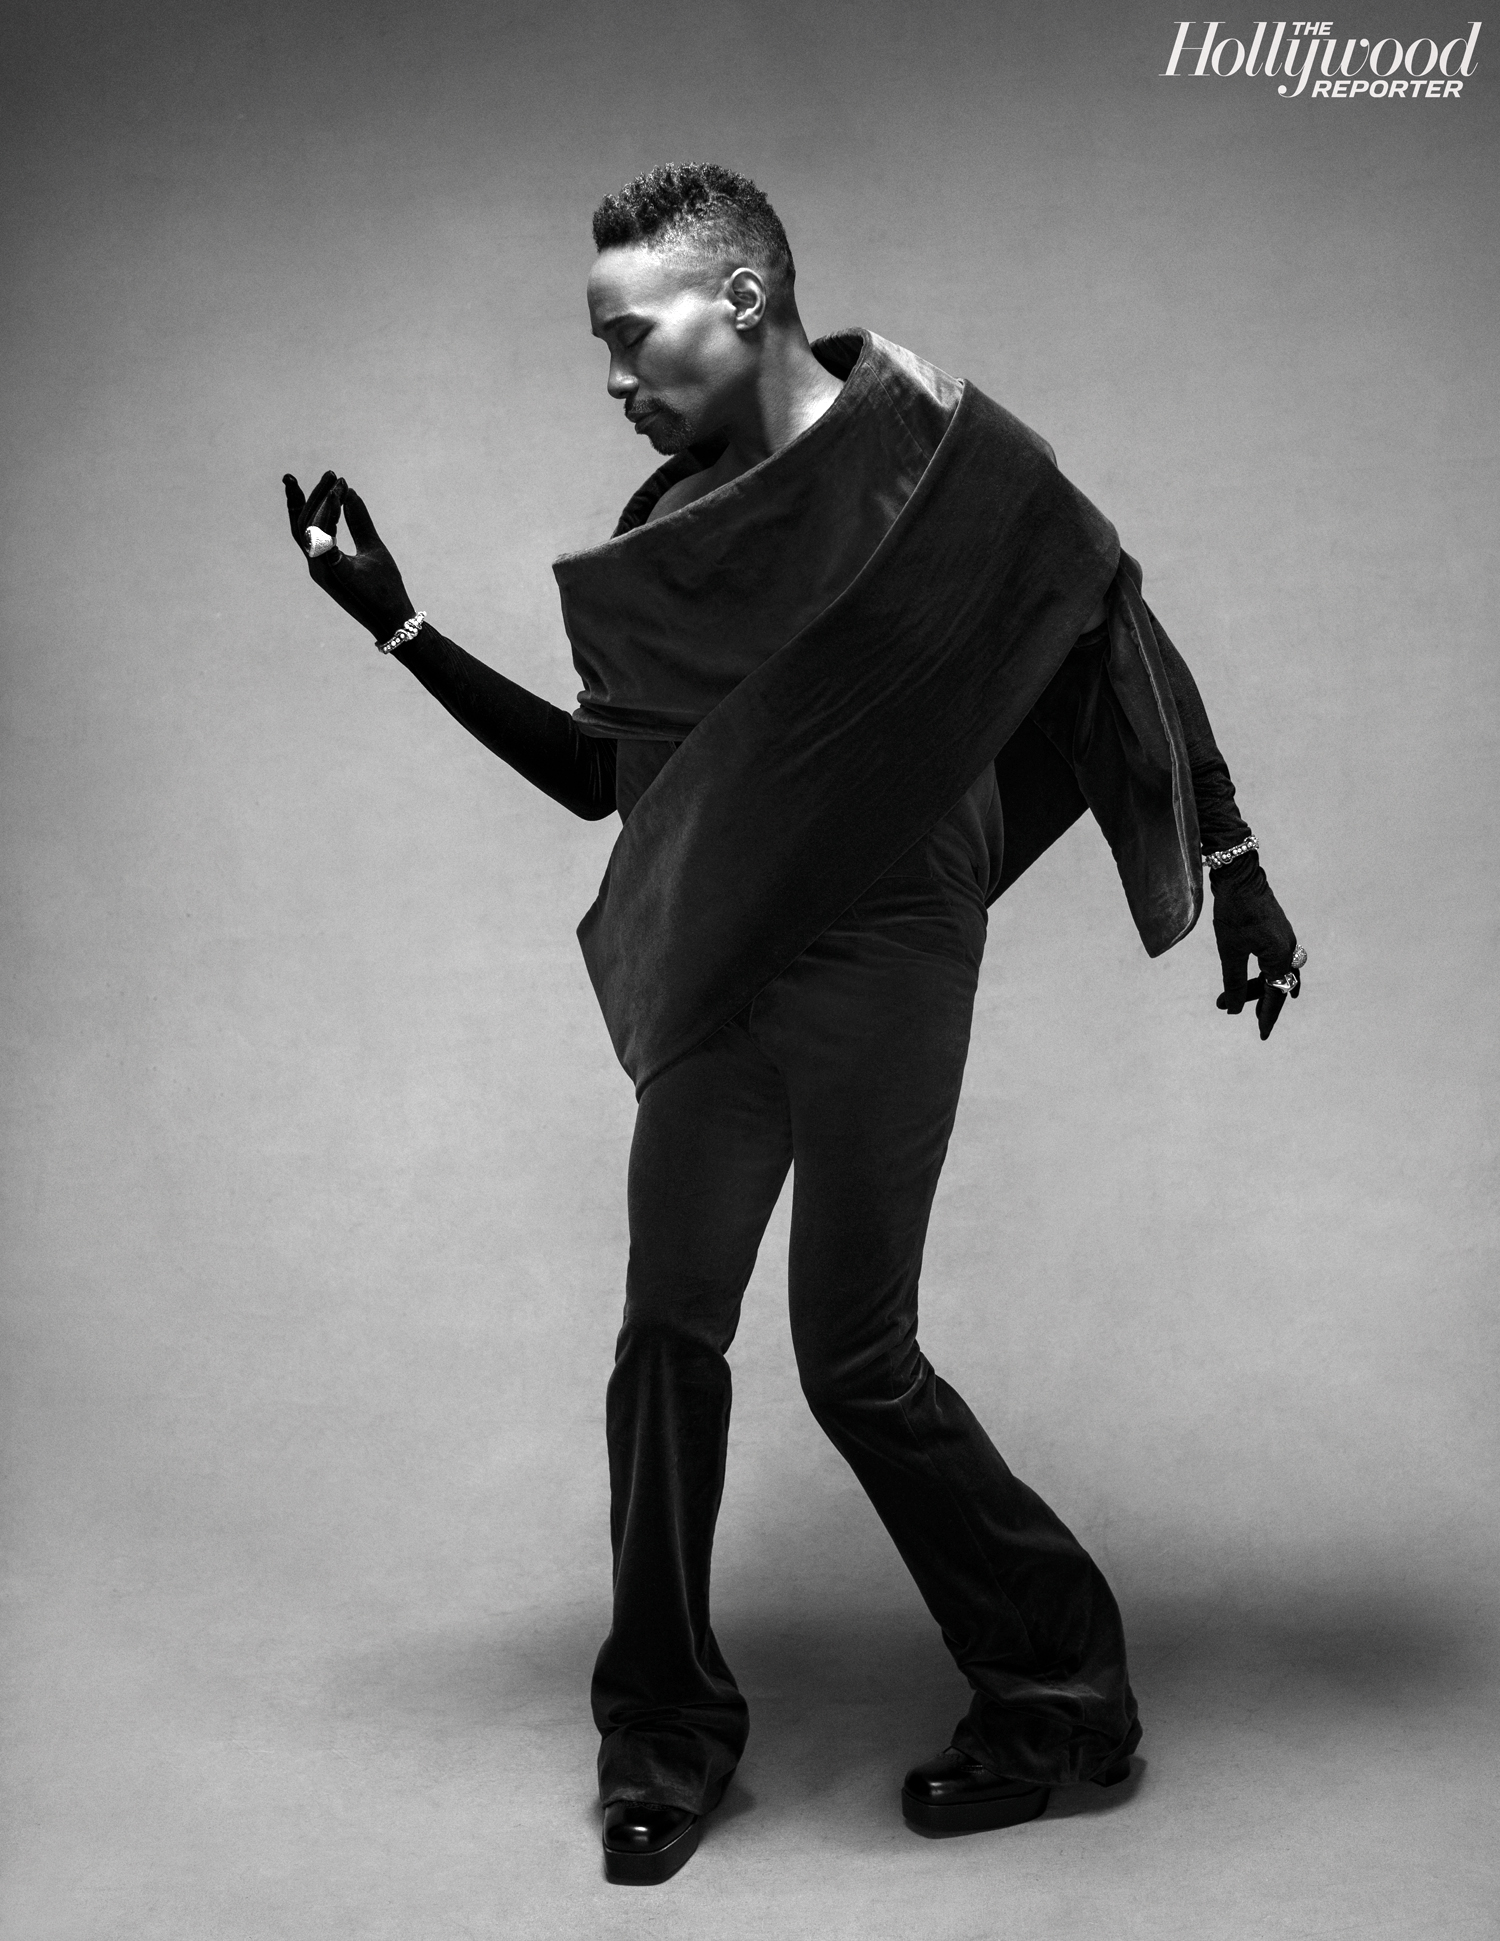 Billy Porter The Hollywood Reporter